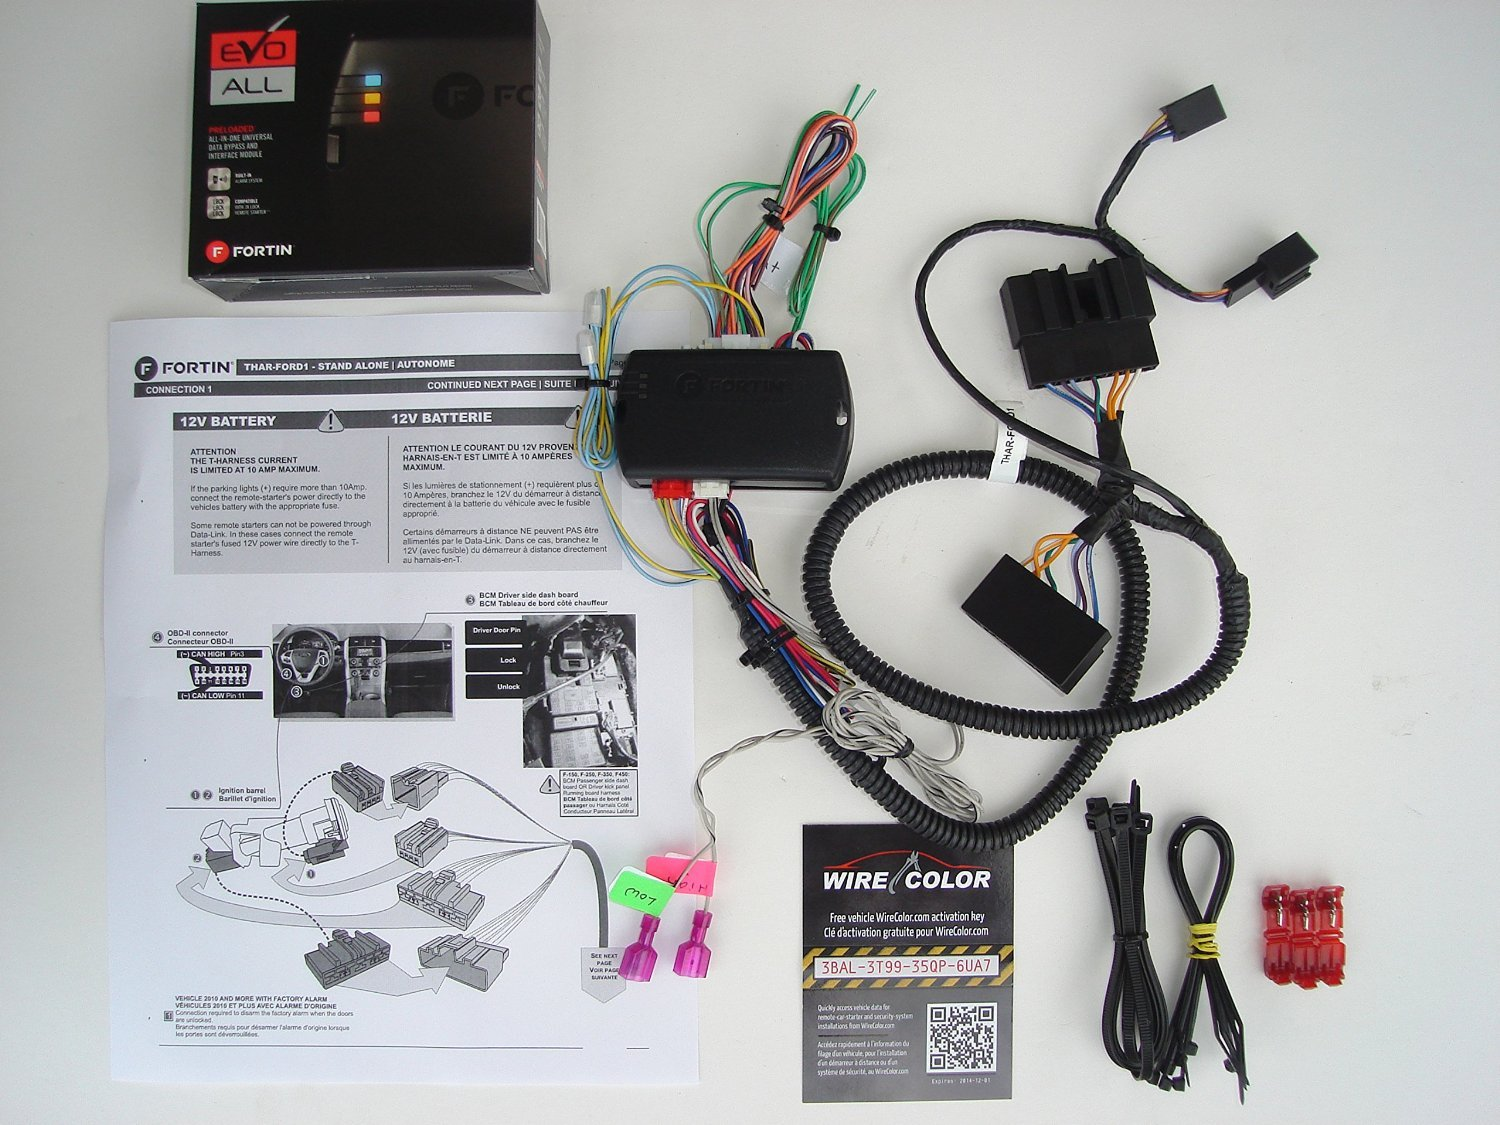 Factory Oem Remote Activated Plug And Play Start Wiring Diagram 2008 F250 King Ranch For Select 2014 Ford Cell Phones Accessories